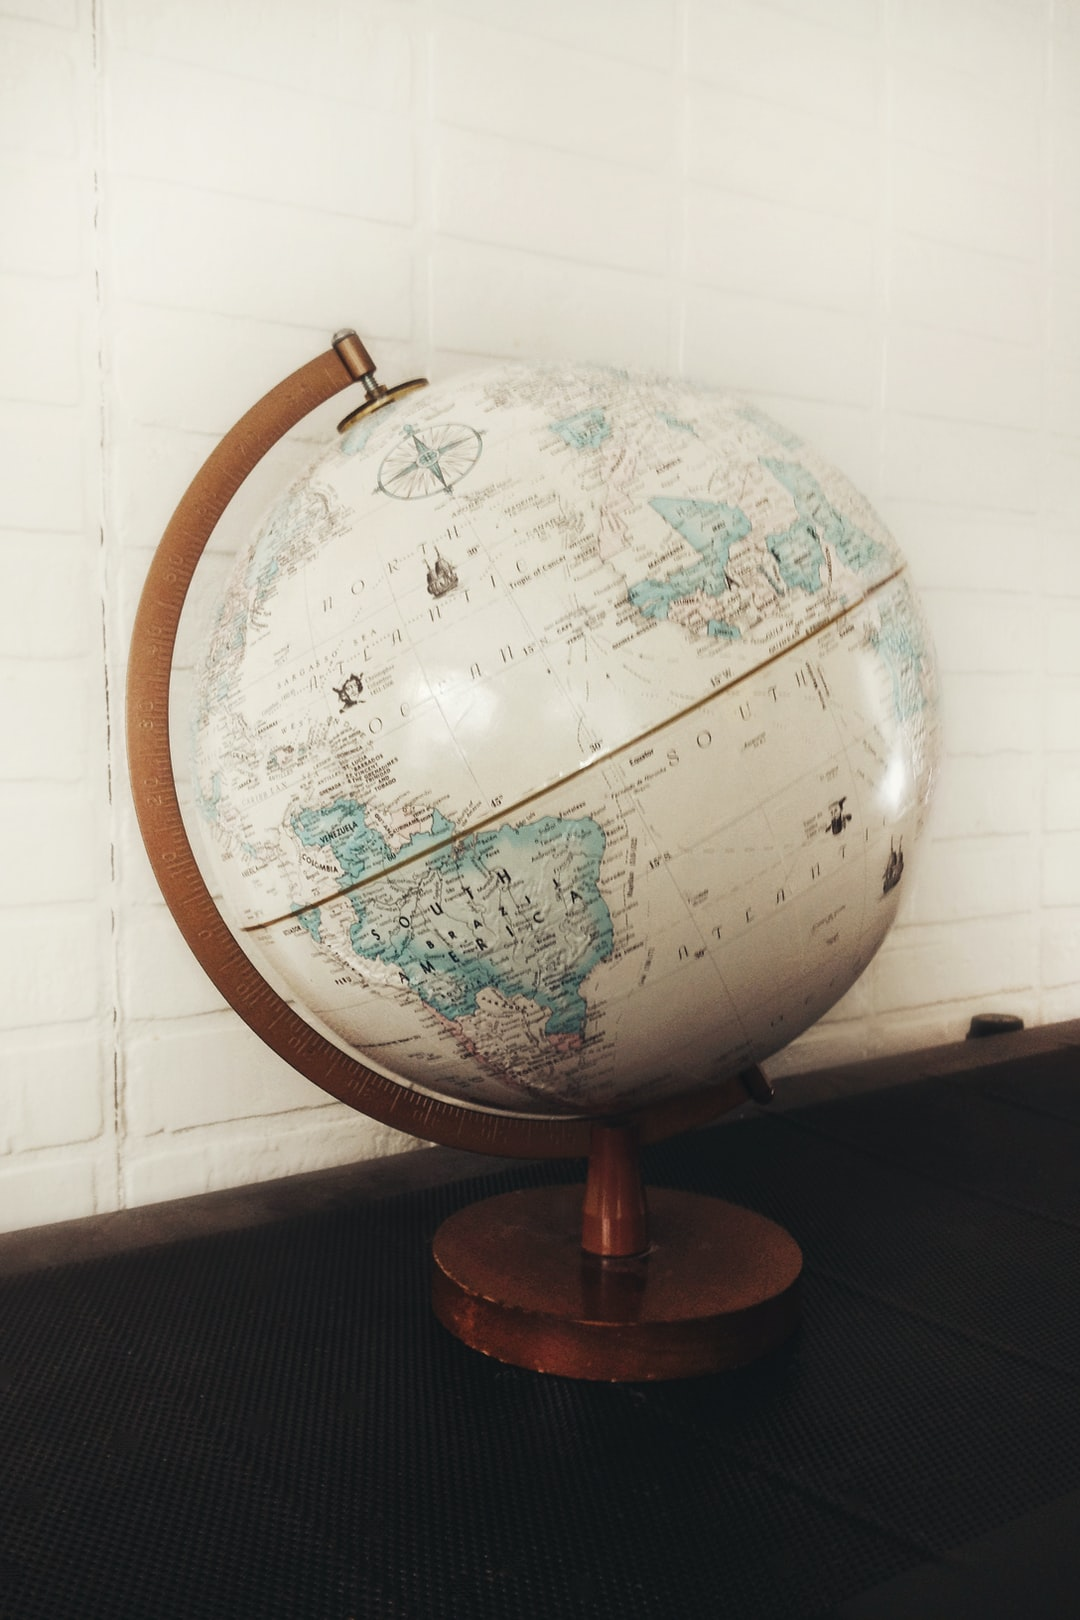 Vintage Rand McNally world globe in ivory on midcentury modern wooden stand sits on a metal table with white brick wall in background.